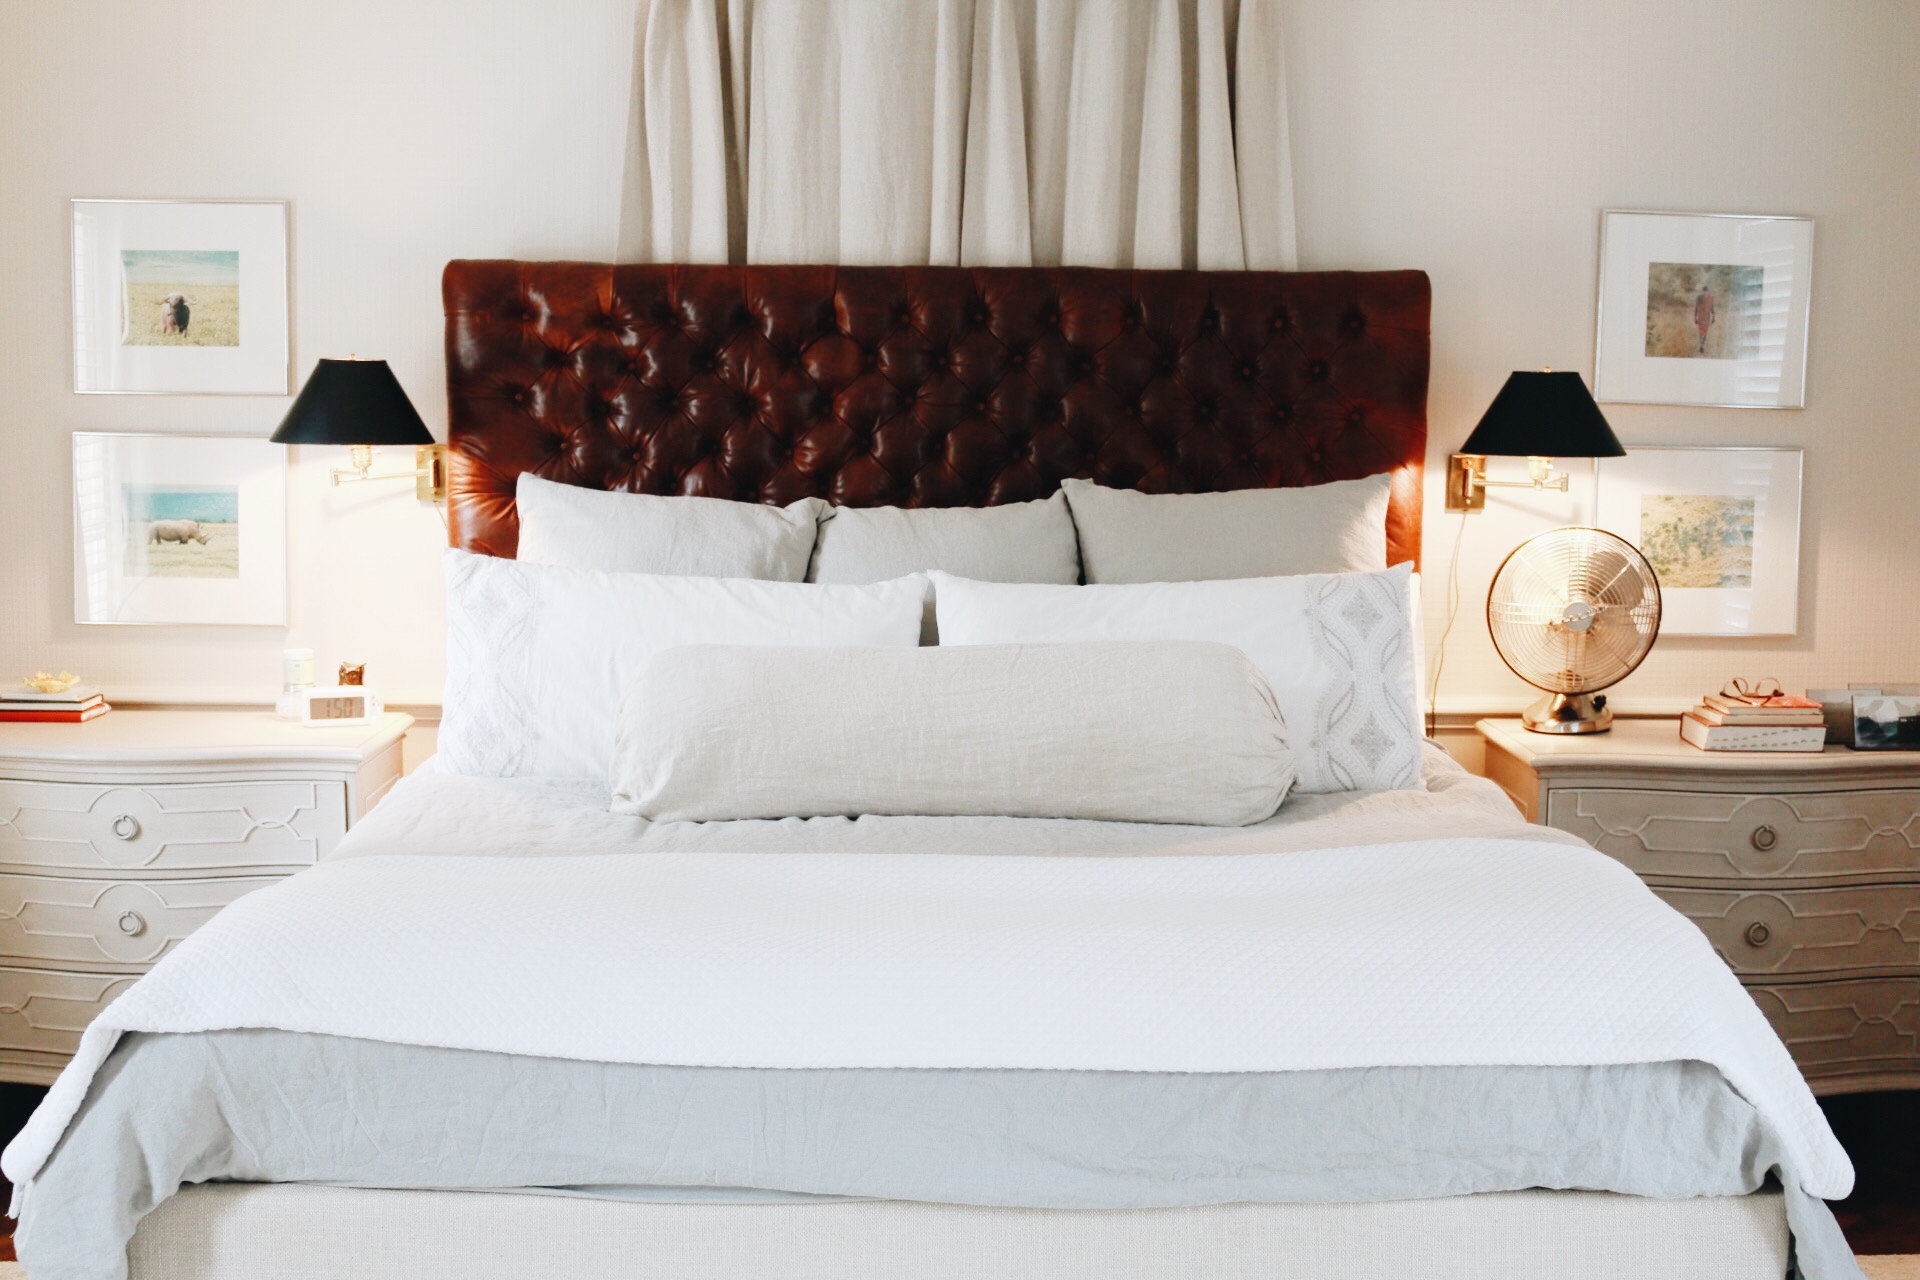 Lauren_Tilley_Interiors_master_bedroom_modern_leather_cozy.jpeg